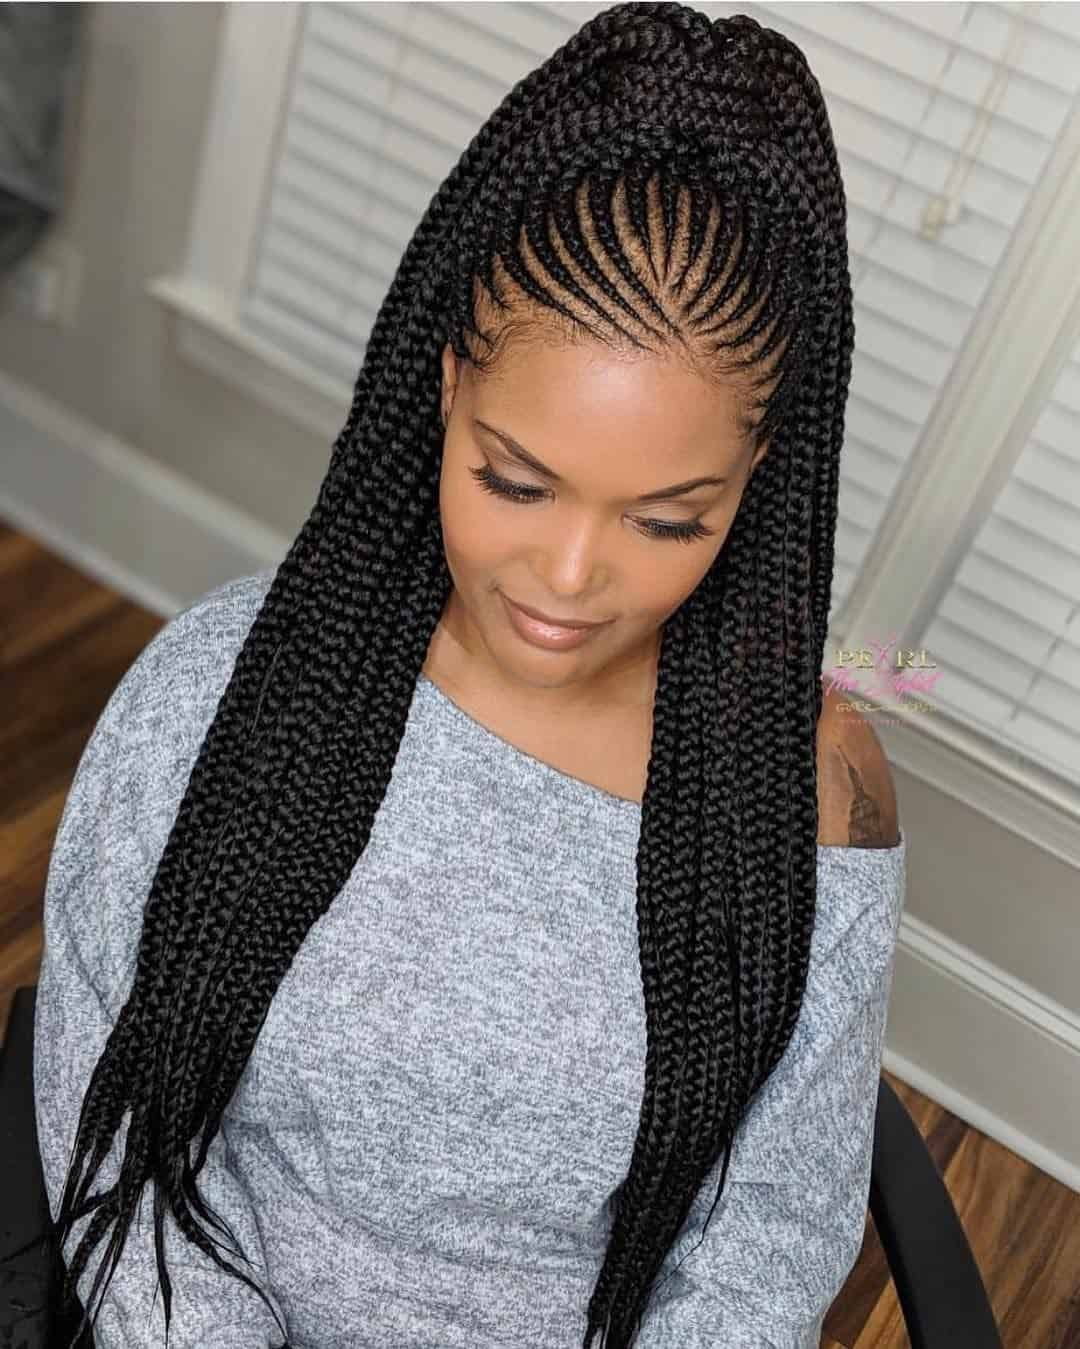 African Braids Braids Coiffure Afro Hairstyle Inspire Pictures In 2020 Braids Hairstyles Pictures African Braids Hairstyles Pictures African Hair Braiding Styles